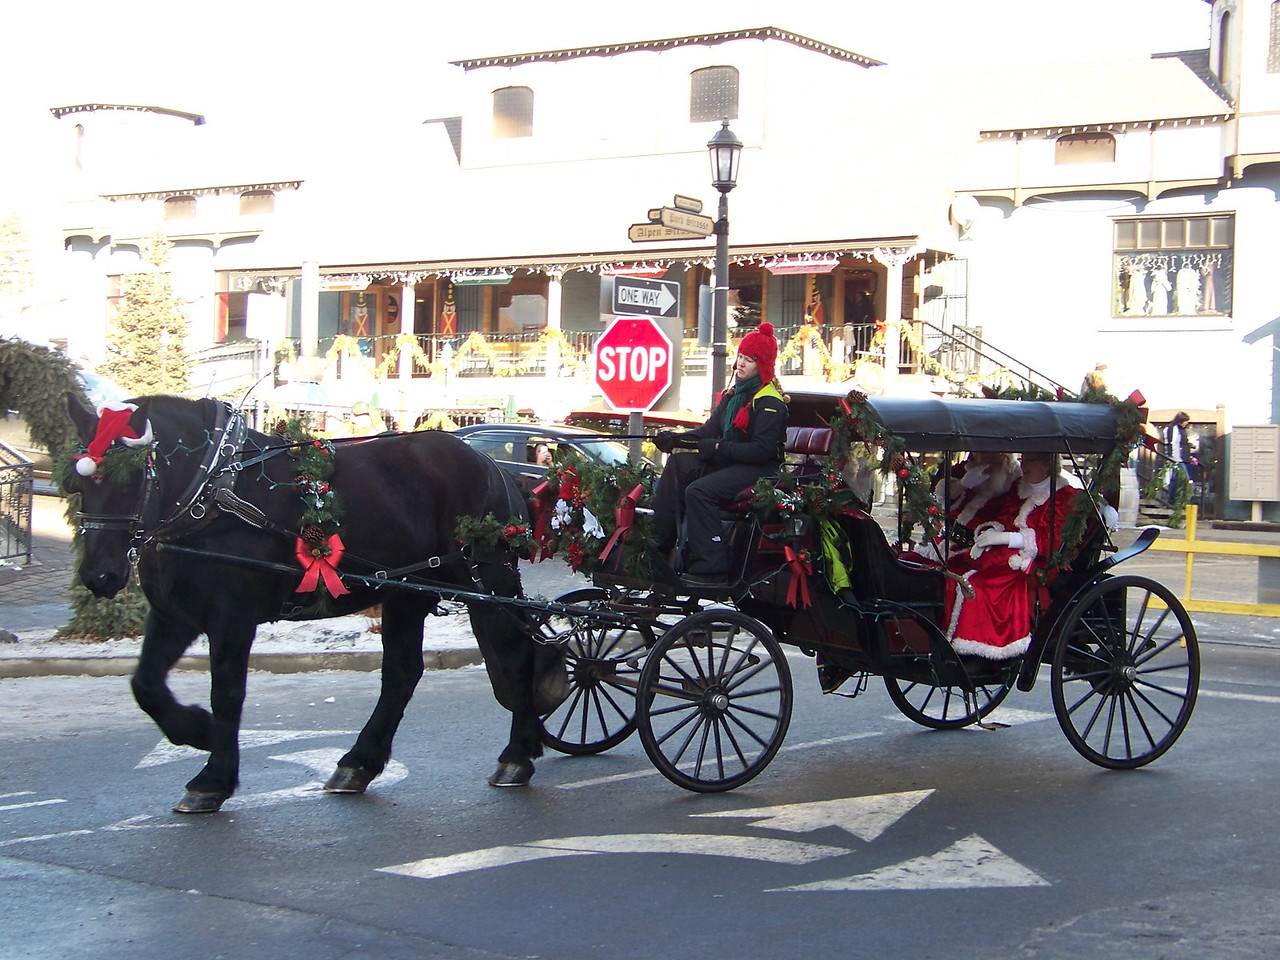 """A horse-drawn carriage full of VIPs arrived to get the party started.  After this, you could wait in line for a free carriage ride, too (although we didn't). [Leavenworth, WA - December 2013 - <b><a target=""""_new"""" href=""""http://youtu.be/NqCqDCOY_tc"""">Watch my video here</a></b>]"""